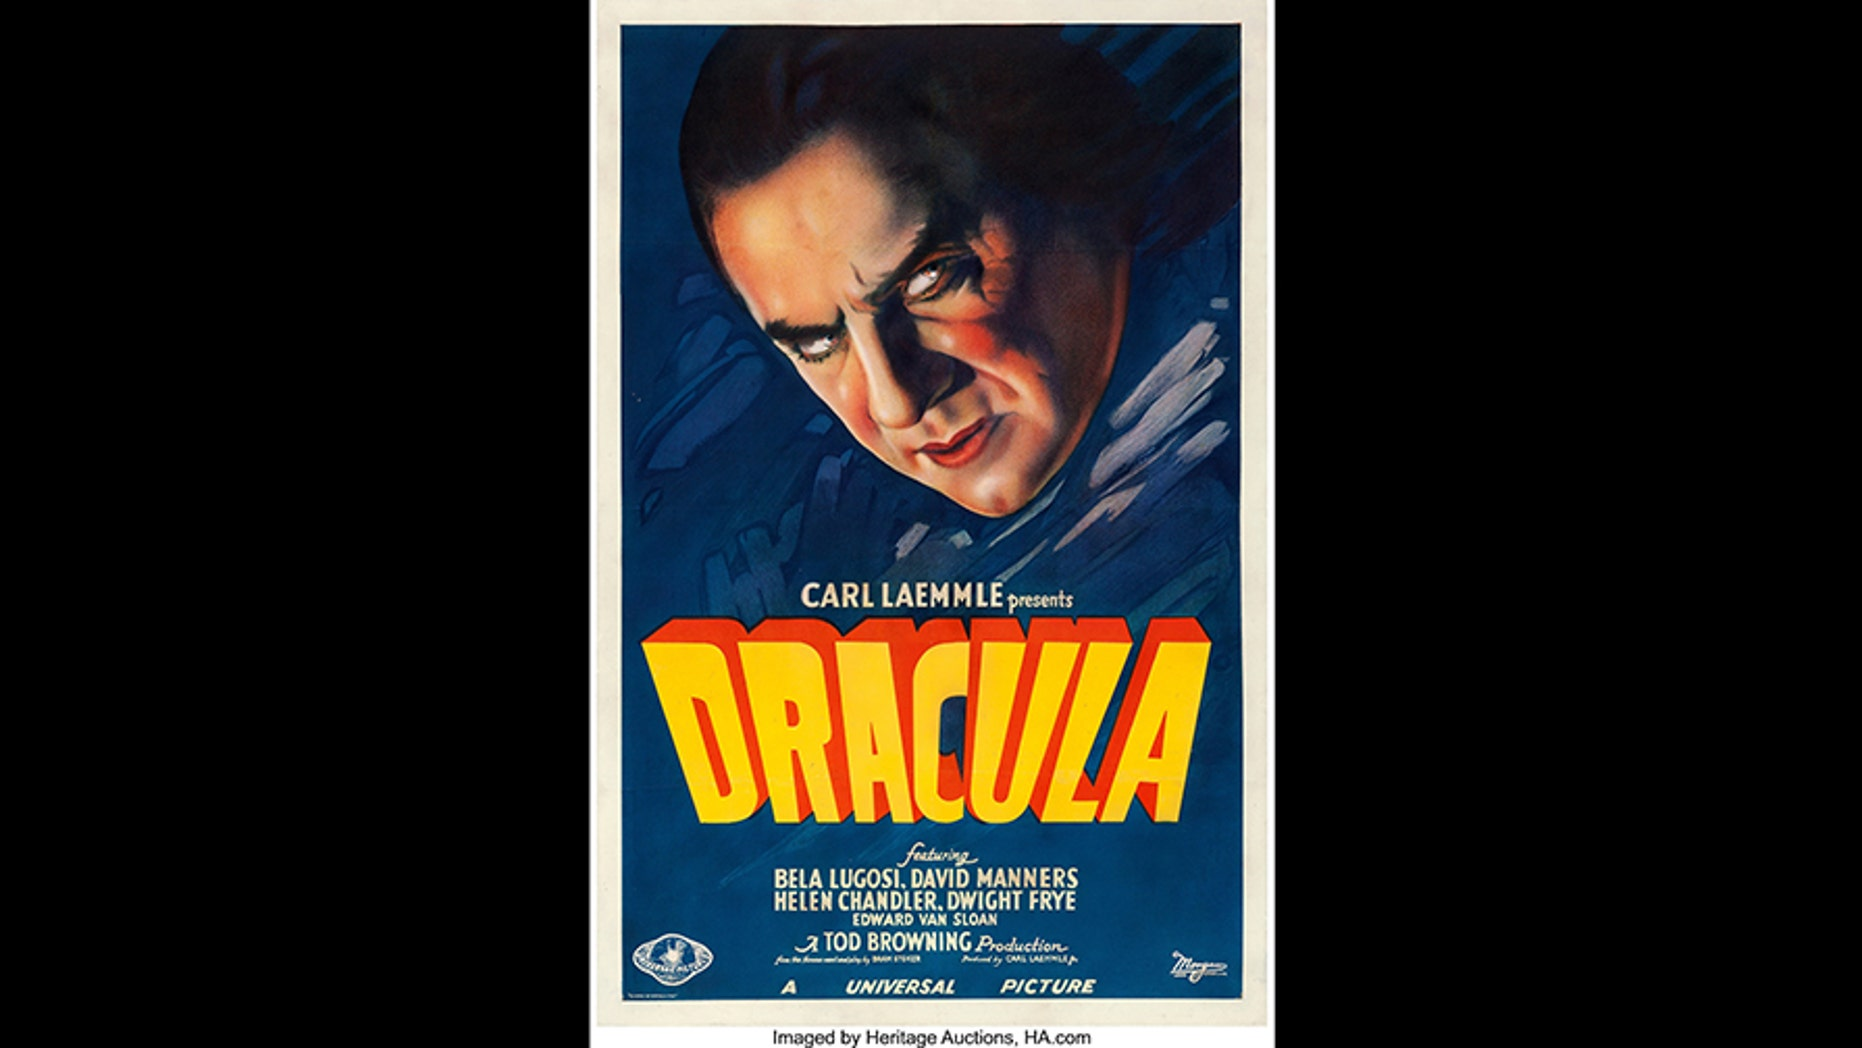 """A rare poster for the 1931 horror film """"Dracula"""" has sold for $525,800. Dallas-based Heritage Auctions said the sale on Saturday appears to be the highest amount a movie poster has garnered at auction. Heritage says the poster, which features the image of actor Bela Lugosi as Dracula, is one of only two known surviving of that particular version. (Photo Courtesy Heritage Auctions via AP)"""